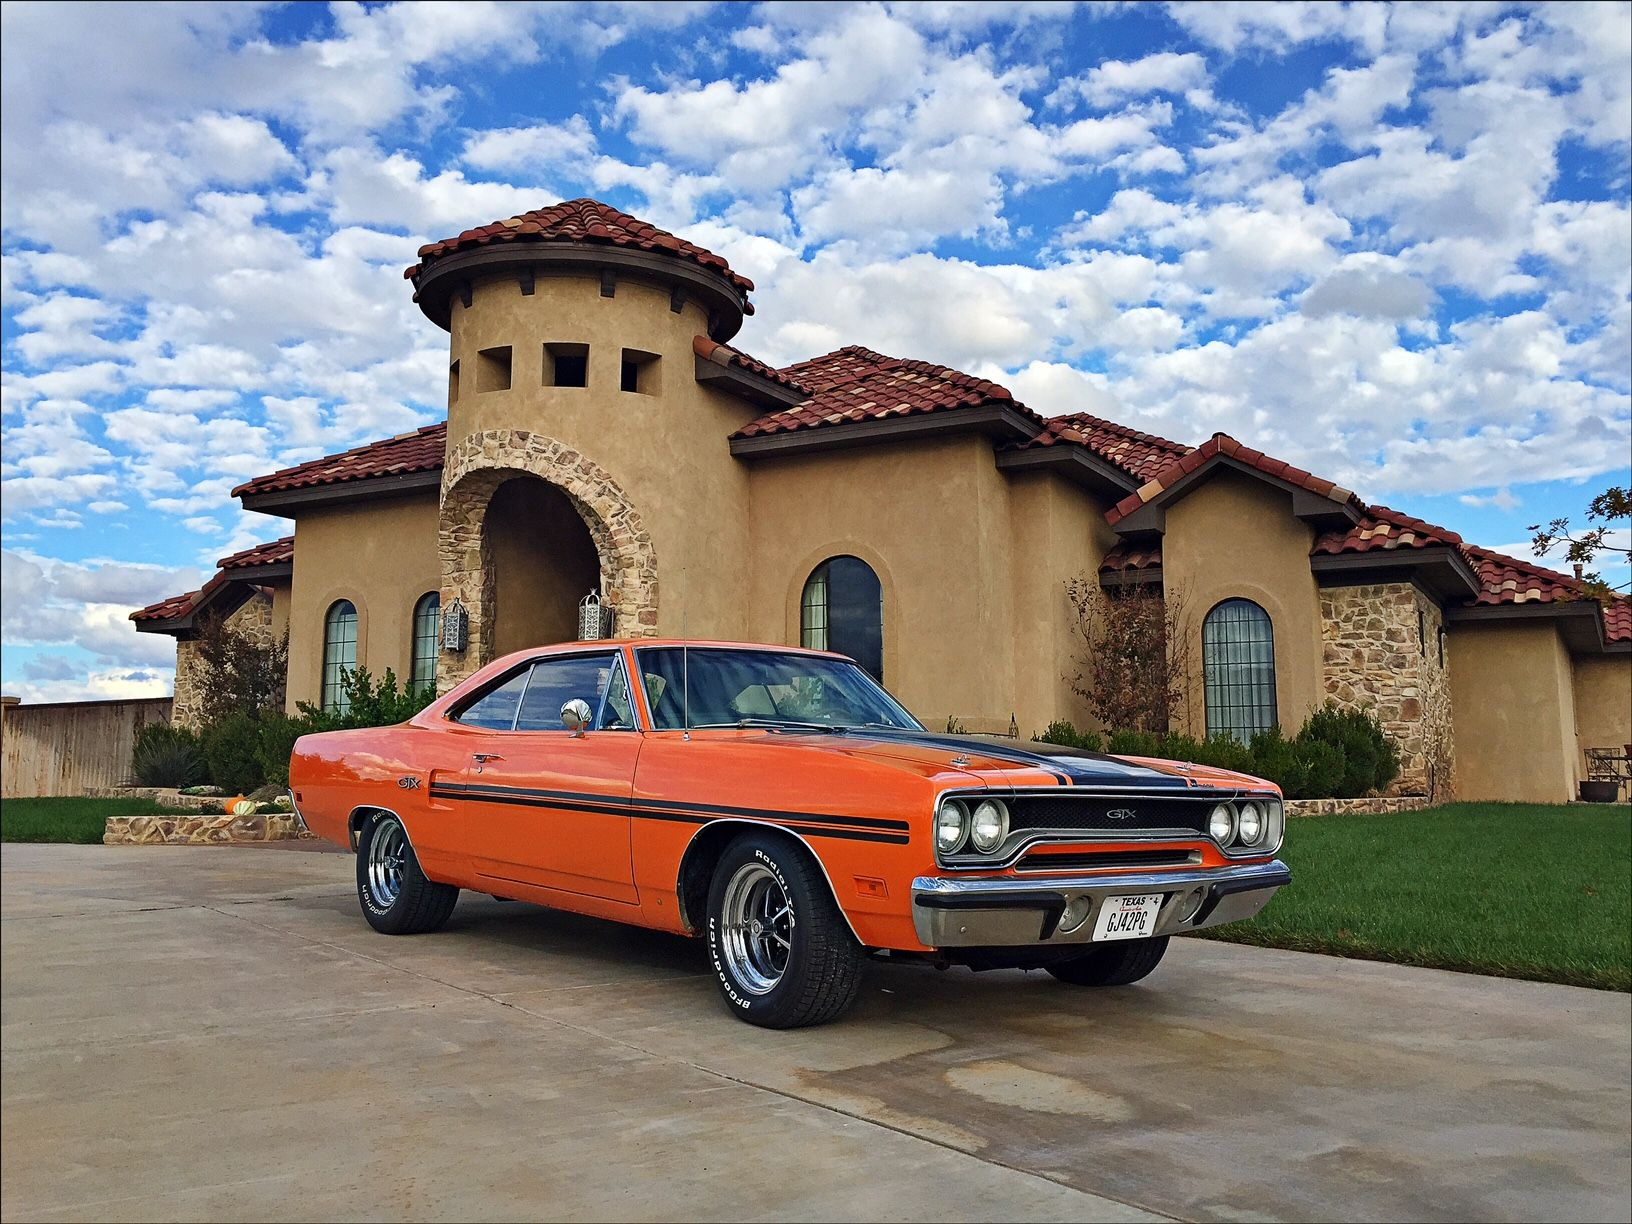 1970 Gtx All Original Numbers Match Vitamin C Orange Mopar